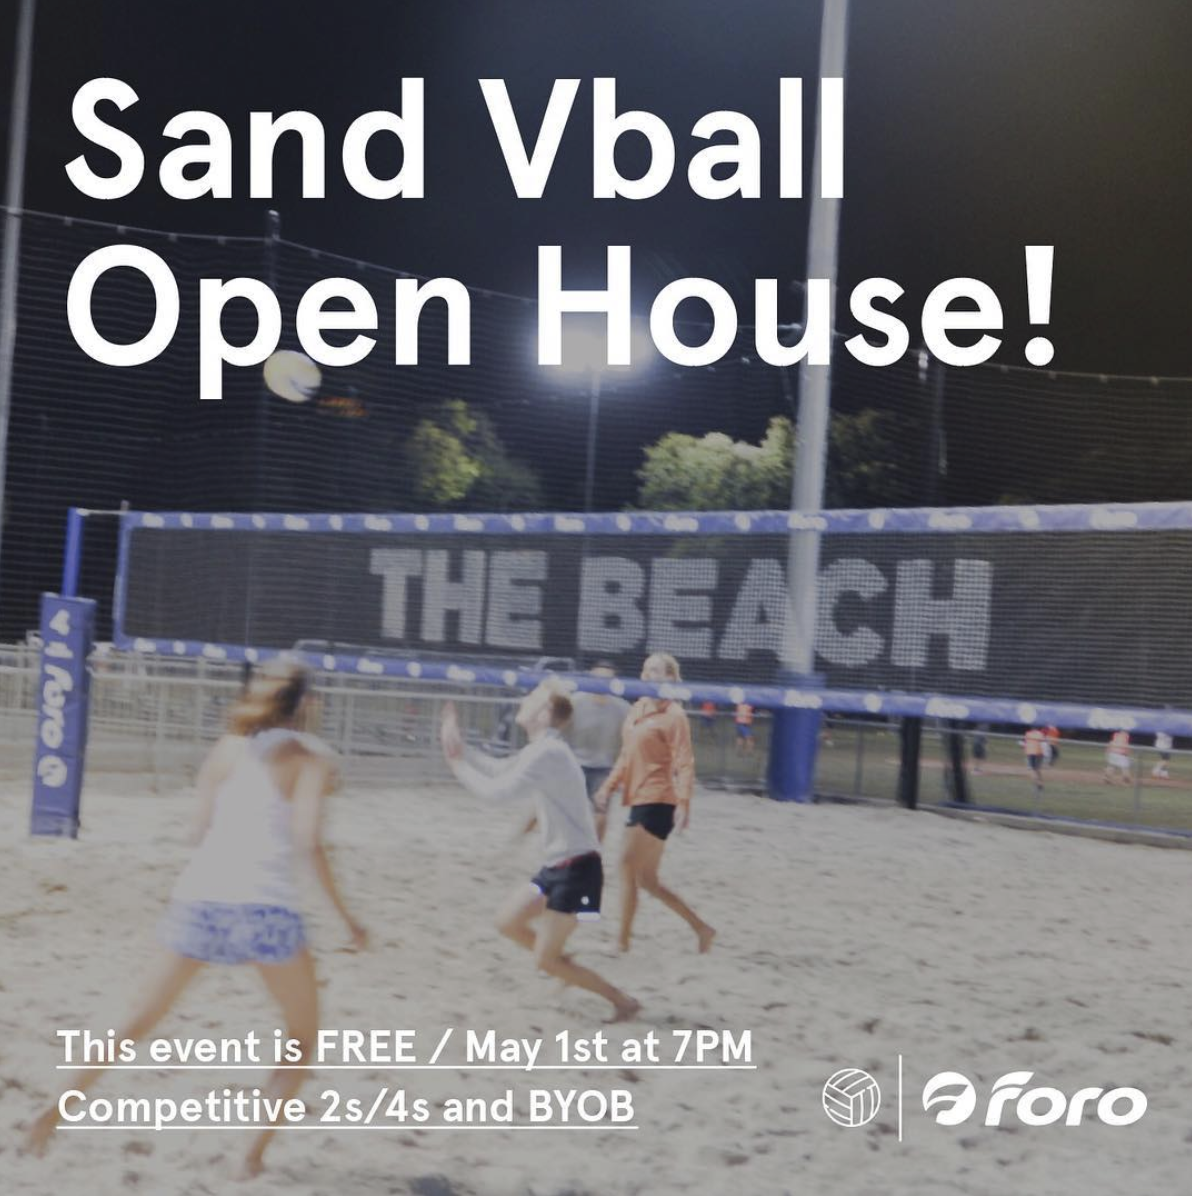 - Join us next Wednesday, May 1st, at 7 PM for competitive sand volleyball that will include 2s and possibly 4s! 🏐🍻This event is FREE and BYOB! For more info get in touch at info@forosportsclub.com